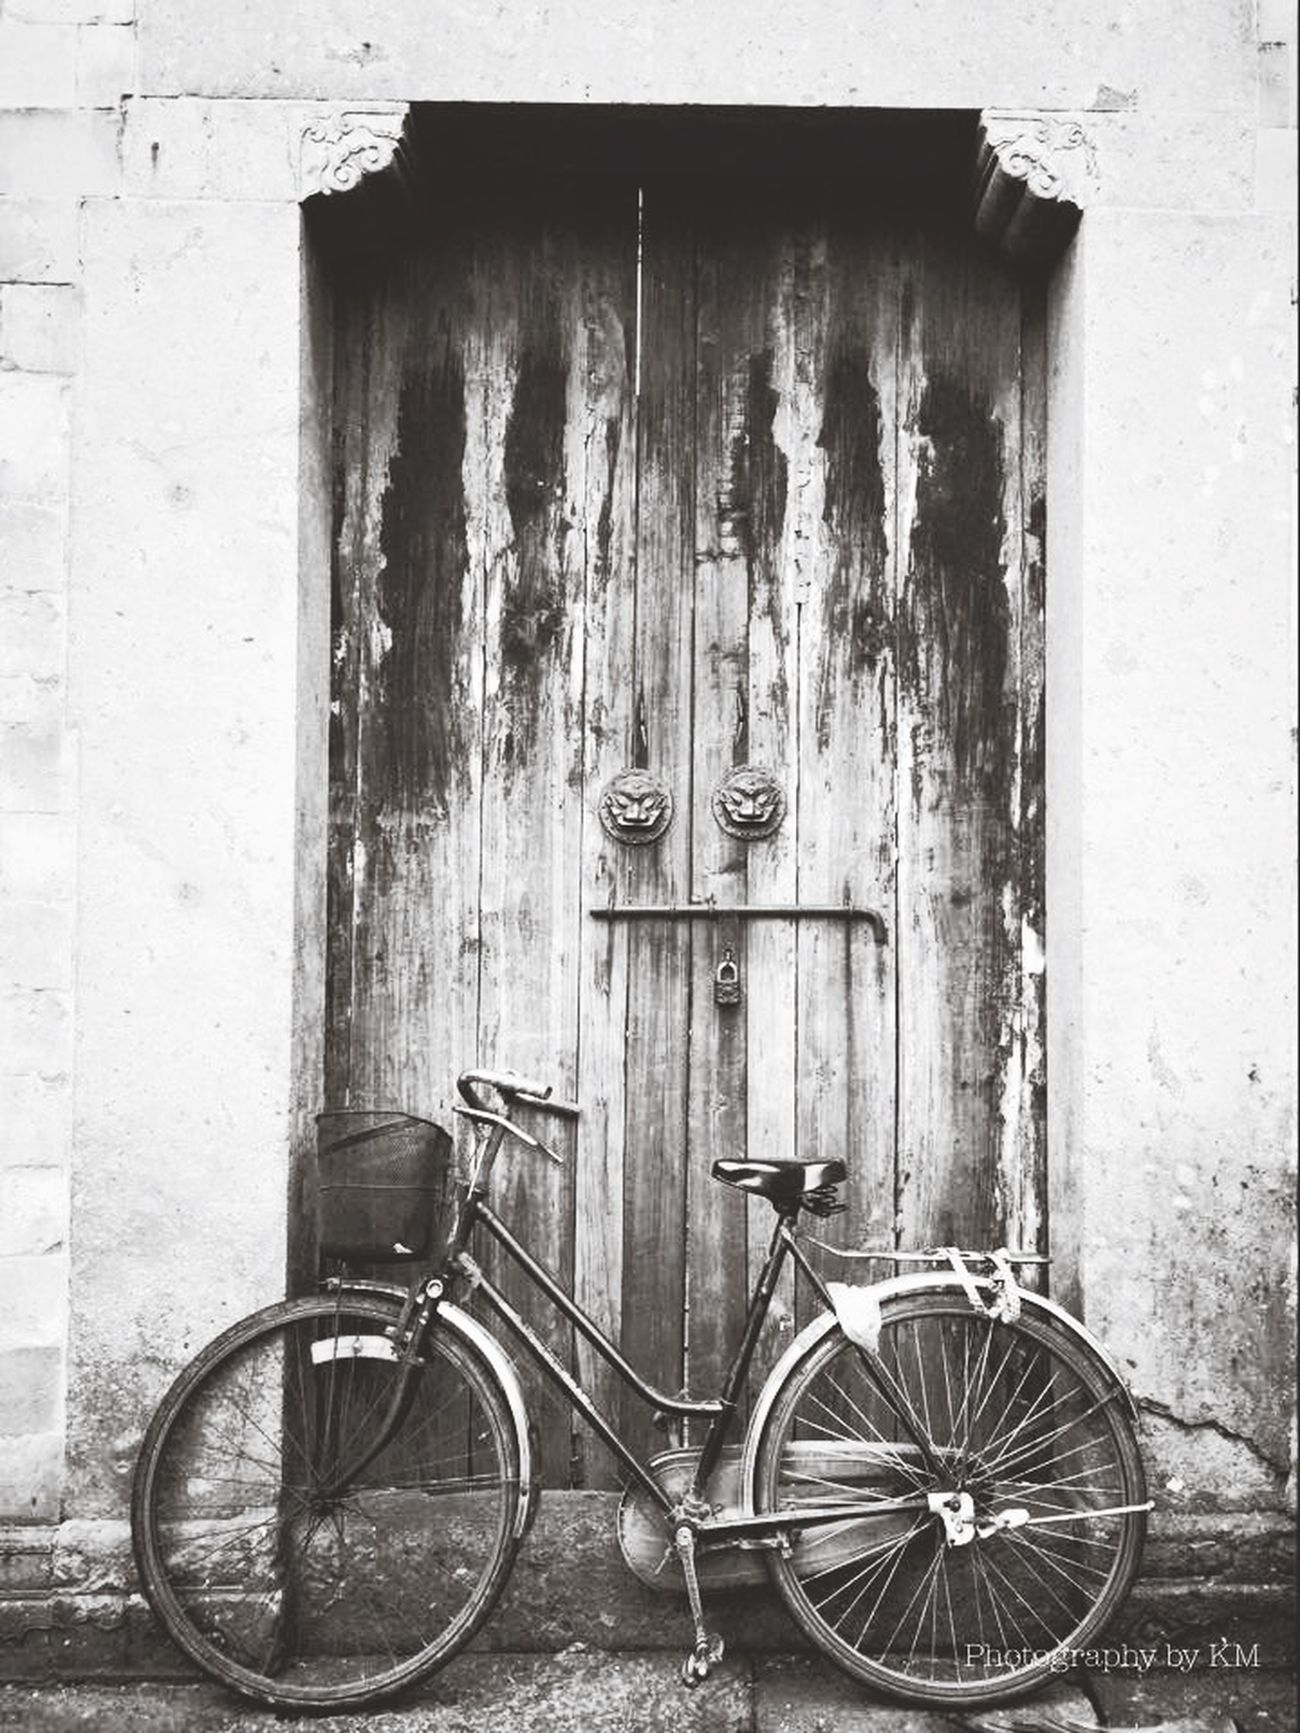 Streetphotography Street Photography Shades Of Grey Black And White Blackandwhite The Minimals (less Edit Juxt Photography) Travel Photography Travelphotography Door Bicycle